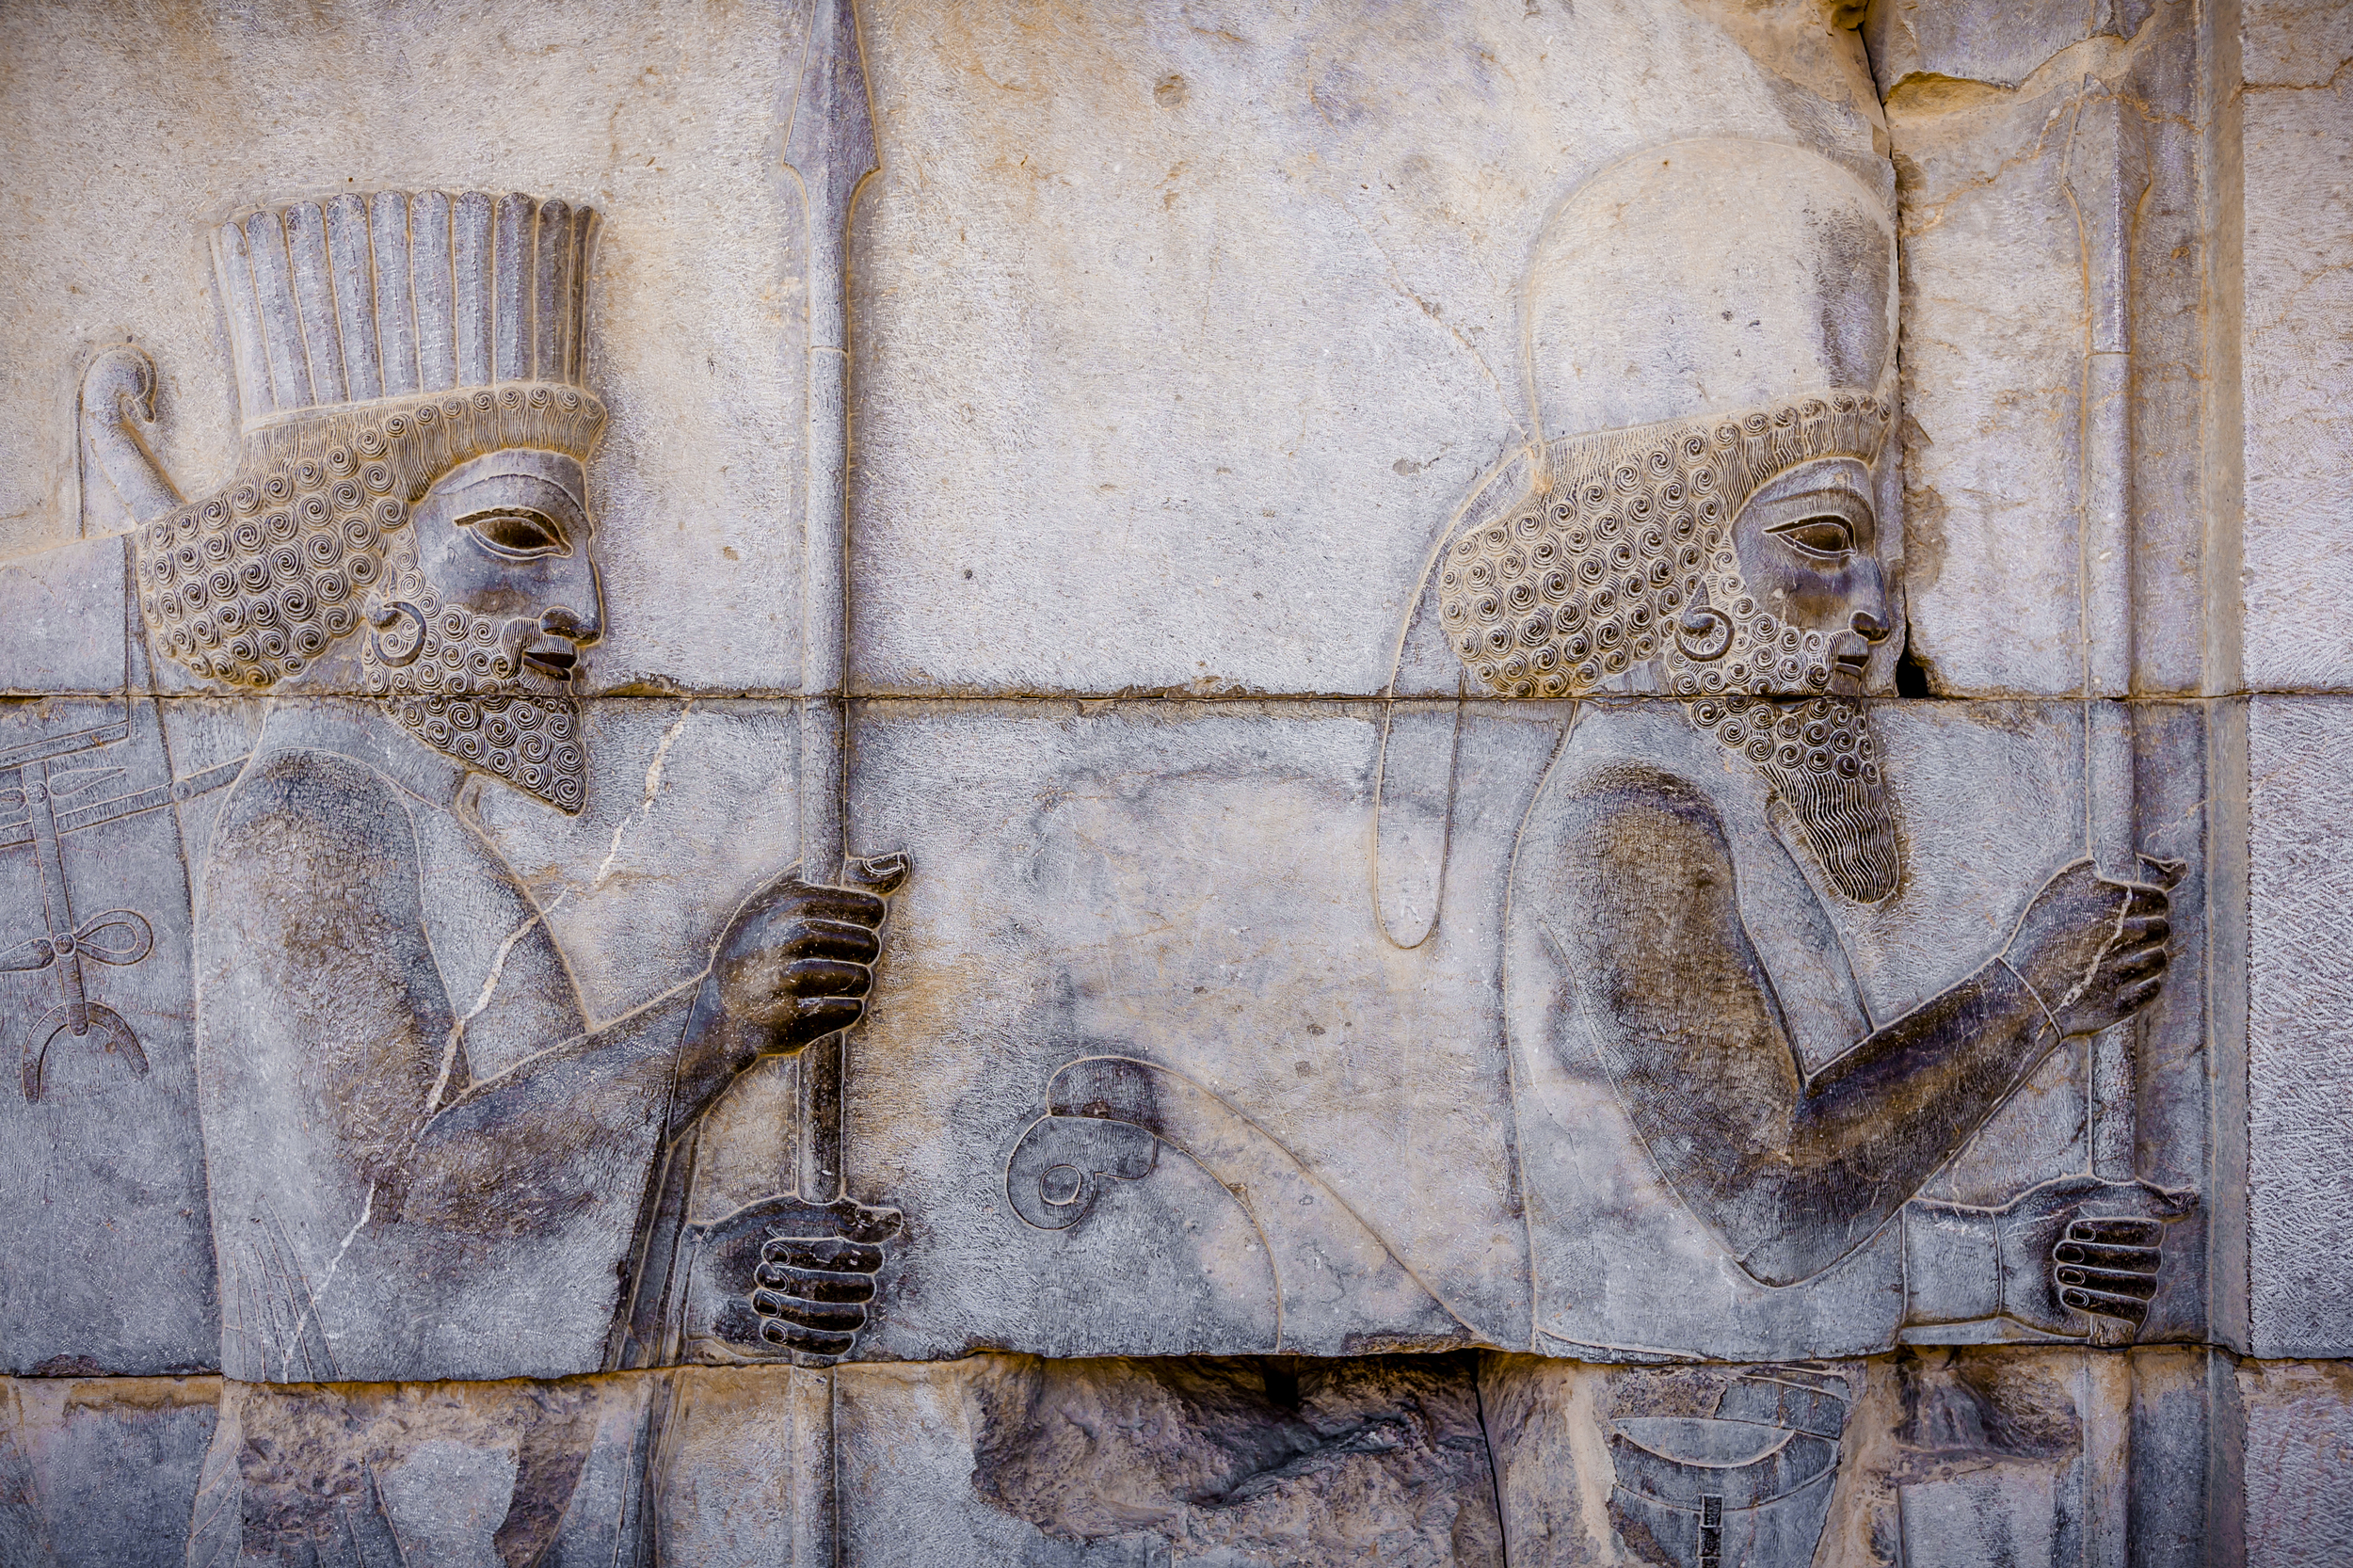 Persian soldiers on the Staircase of All Nations at Persepolis, Iran. These ancient carvings were protected from damage by being buried.